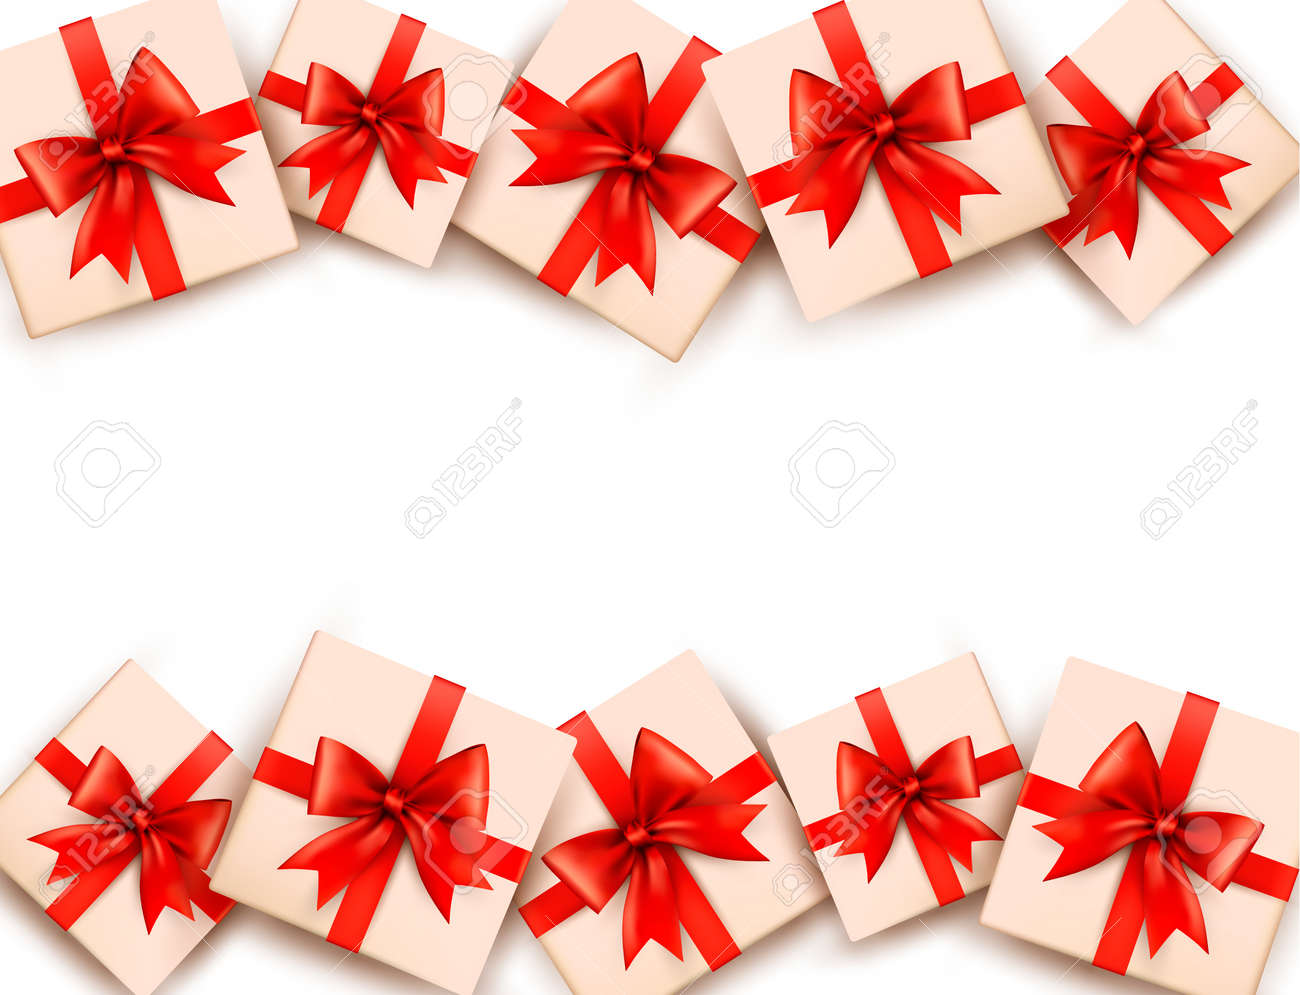 Holiday background with gift boxes and red bows. Stock Vector - 17473550